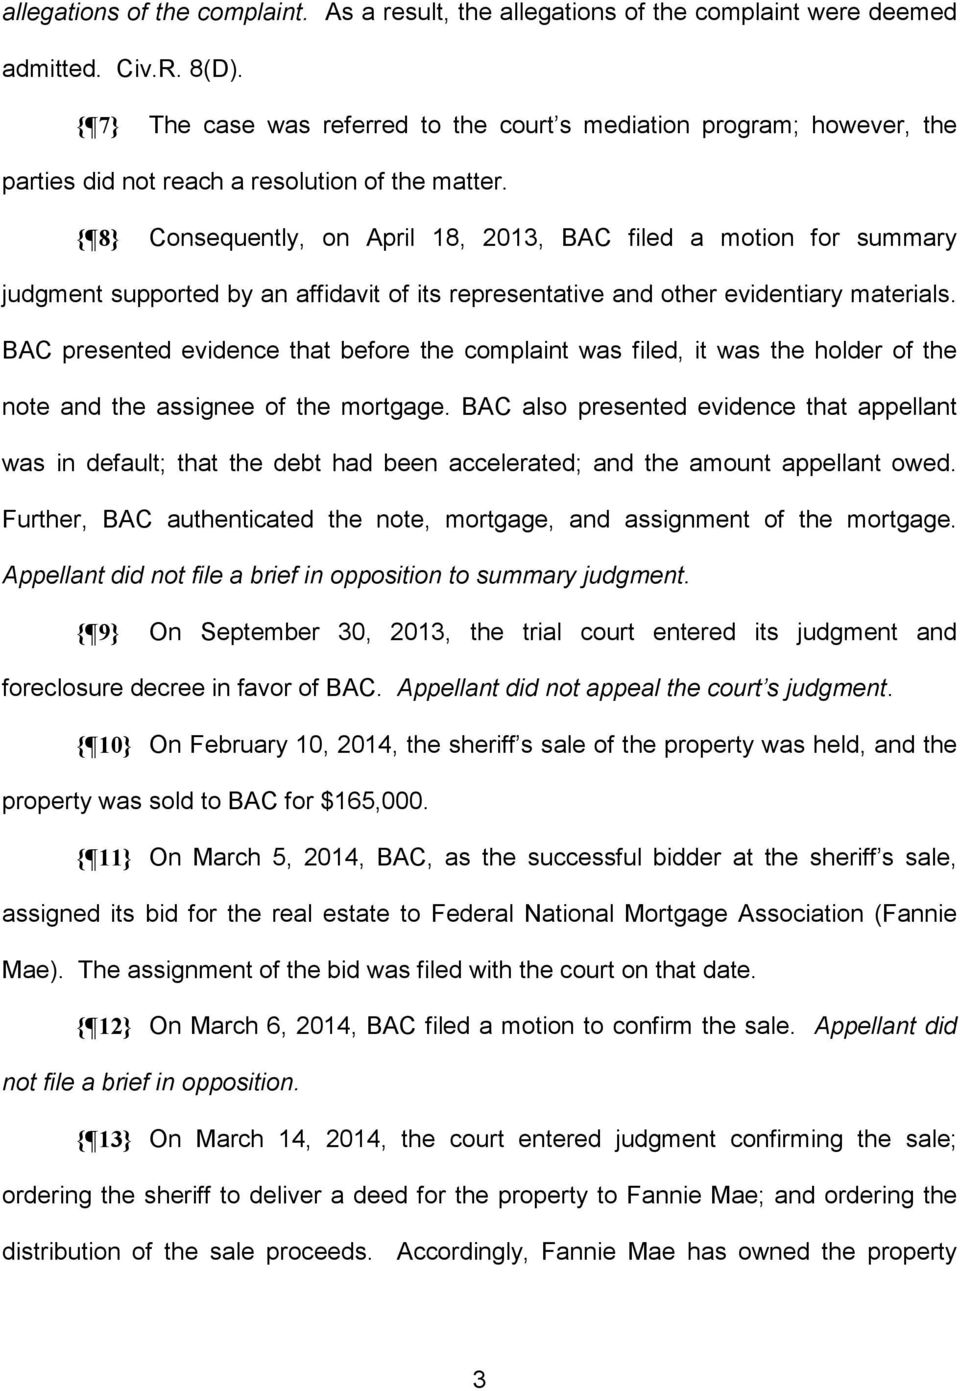 { 8} Consequently, on April 18, 2013, BAC filed a motion for summary judgment supported by an affidavit of its representative and other evidentiary materials.